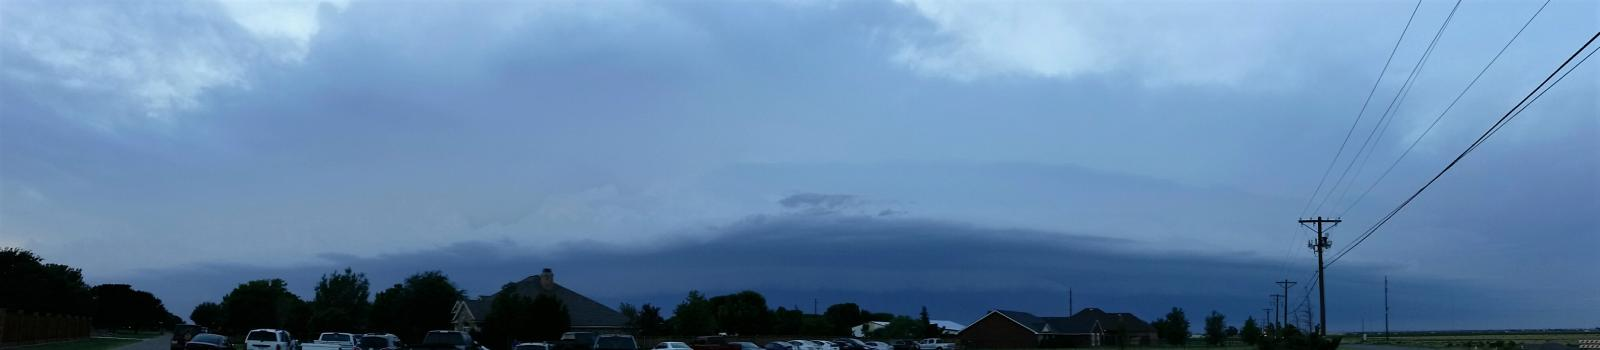 Panorama of the shelf cloud approaching the south side of Lubbock near sunset on the 4th of July.